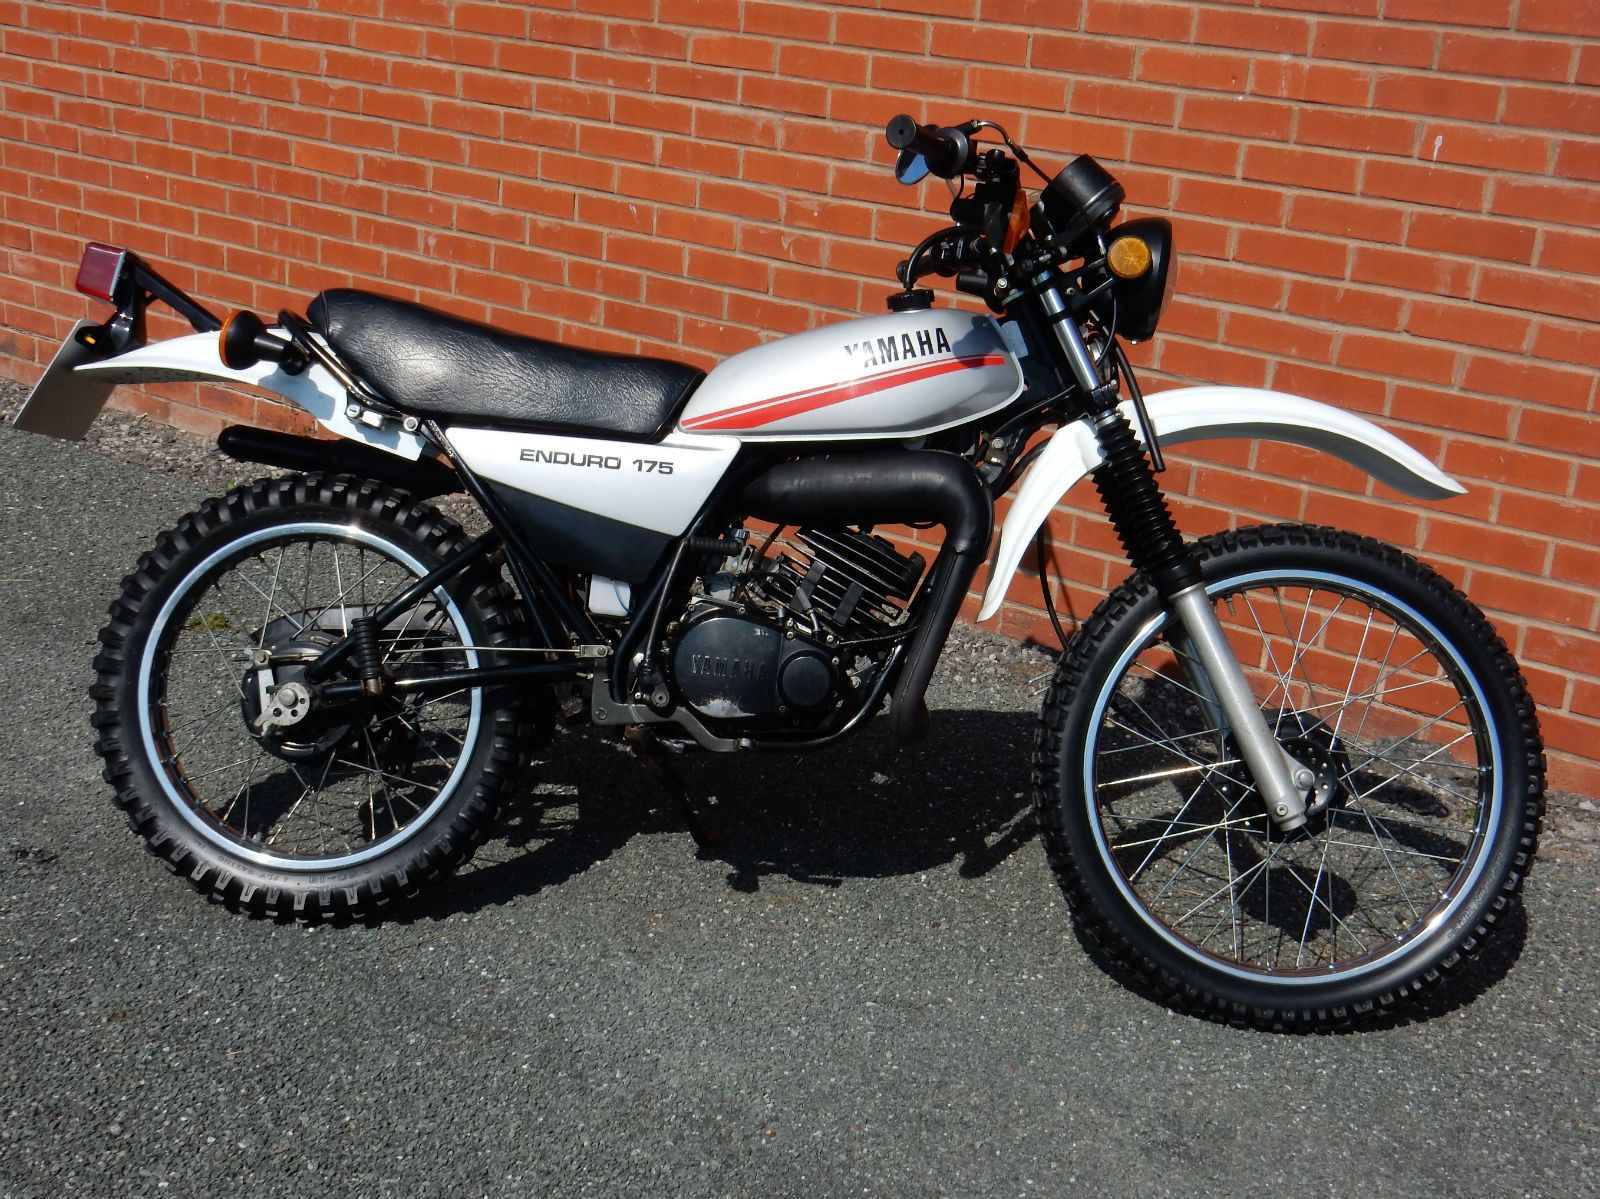 Yamaha Dt 175 Enduro 1979 171cc Matching Nos Mot D July 2017 Ebay Cafe Racer Kits Yamaha Bike